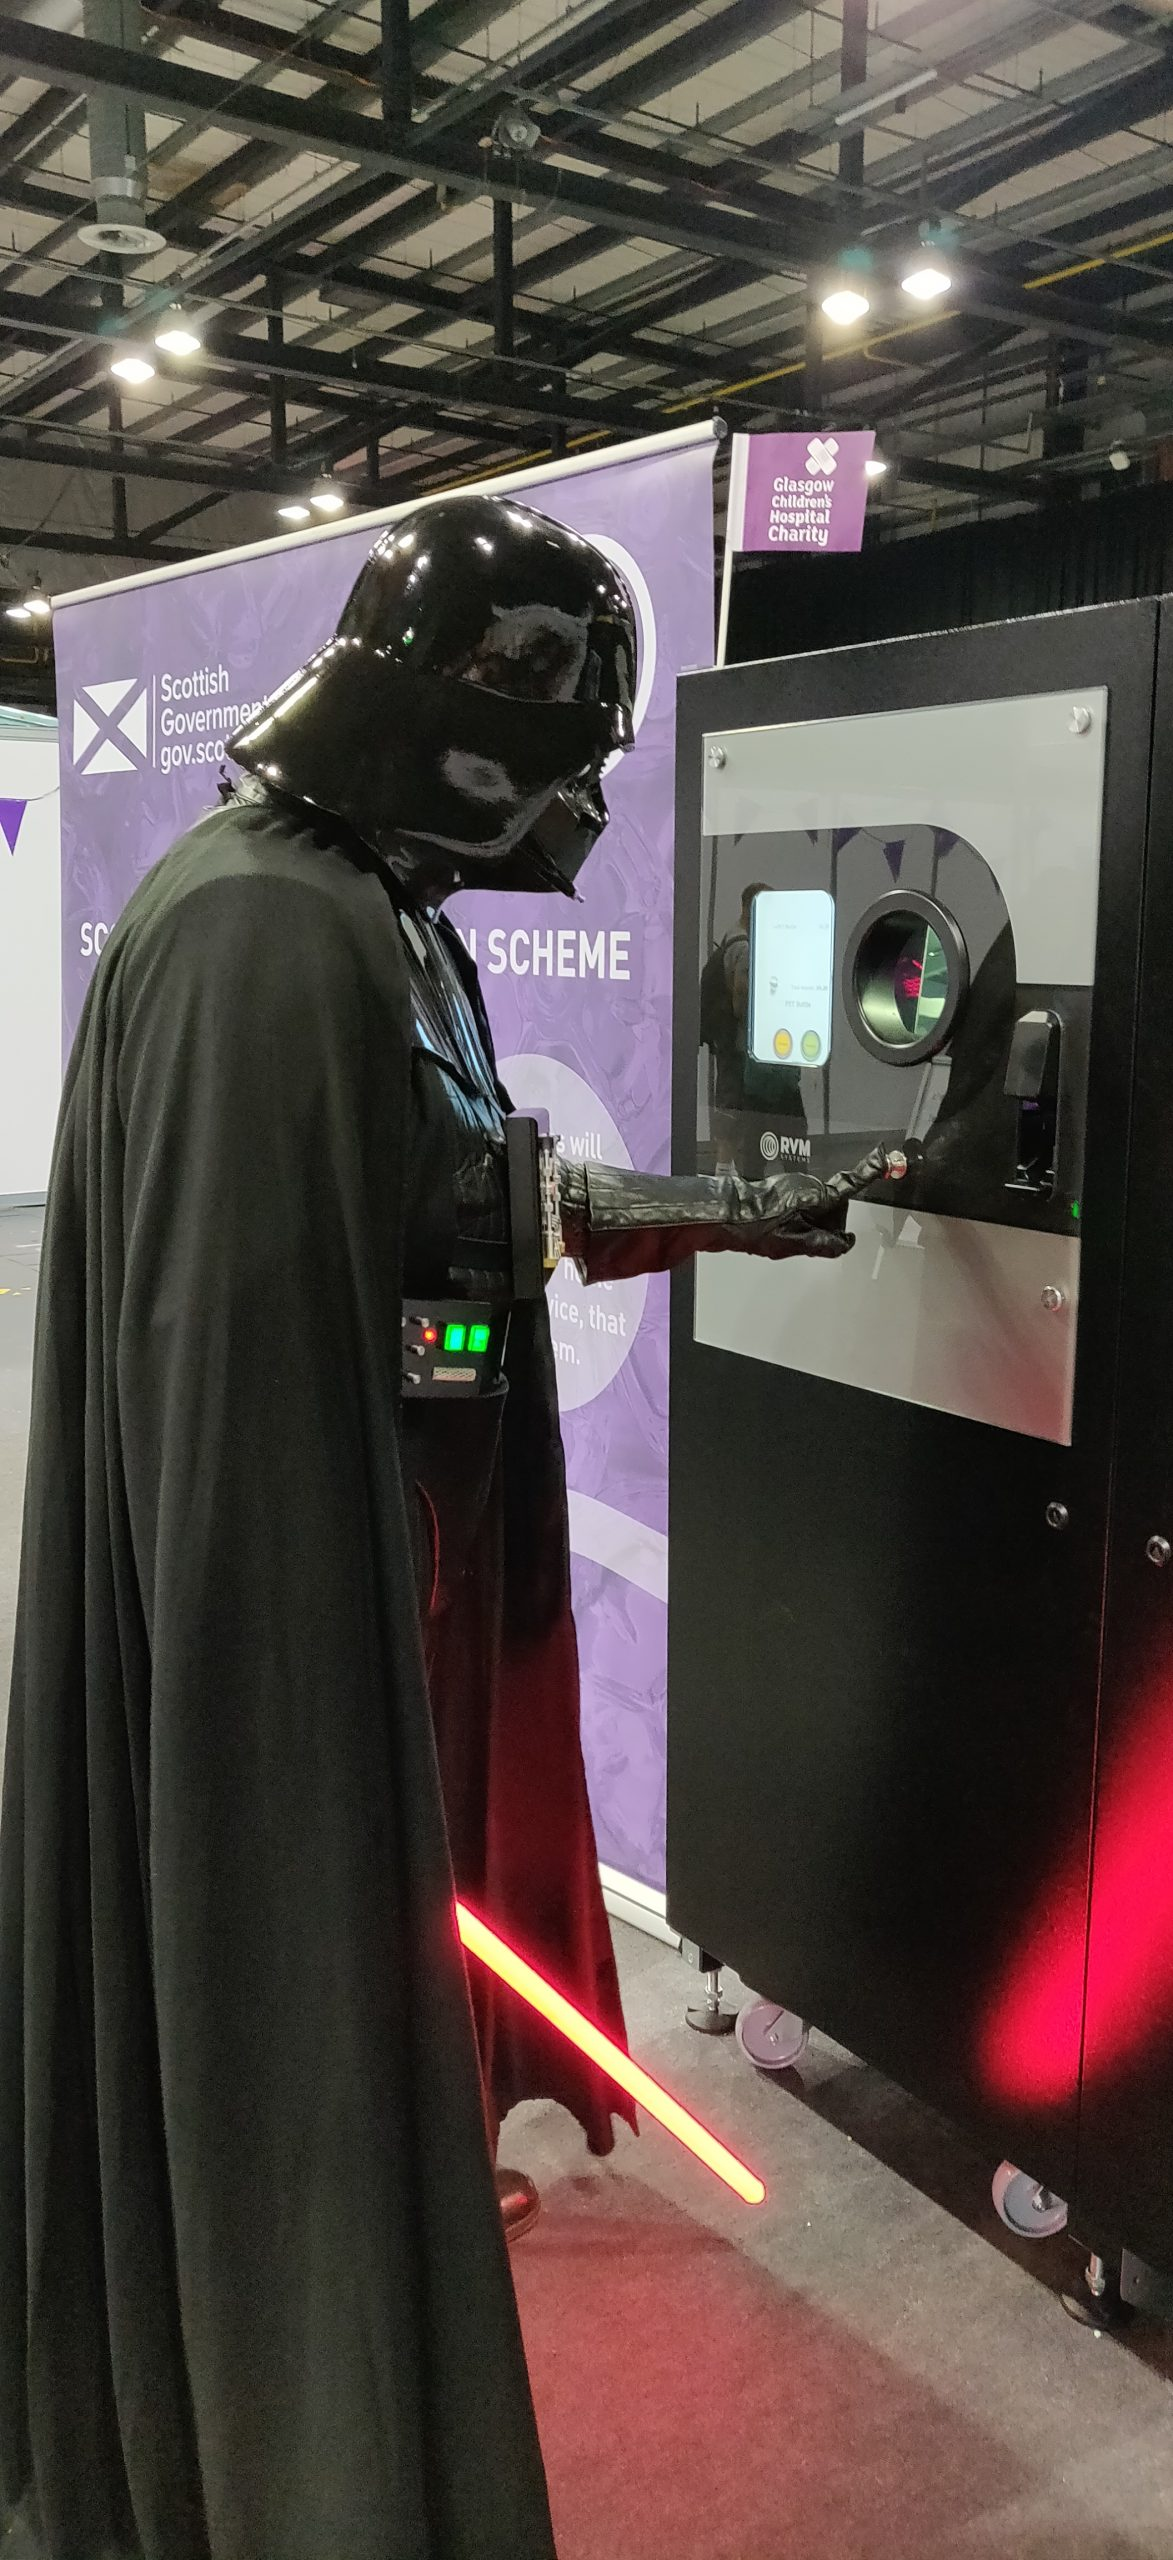 Darth Vader using Reverse Vending at Zero Waste Scotland Stand